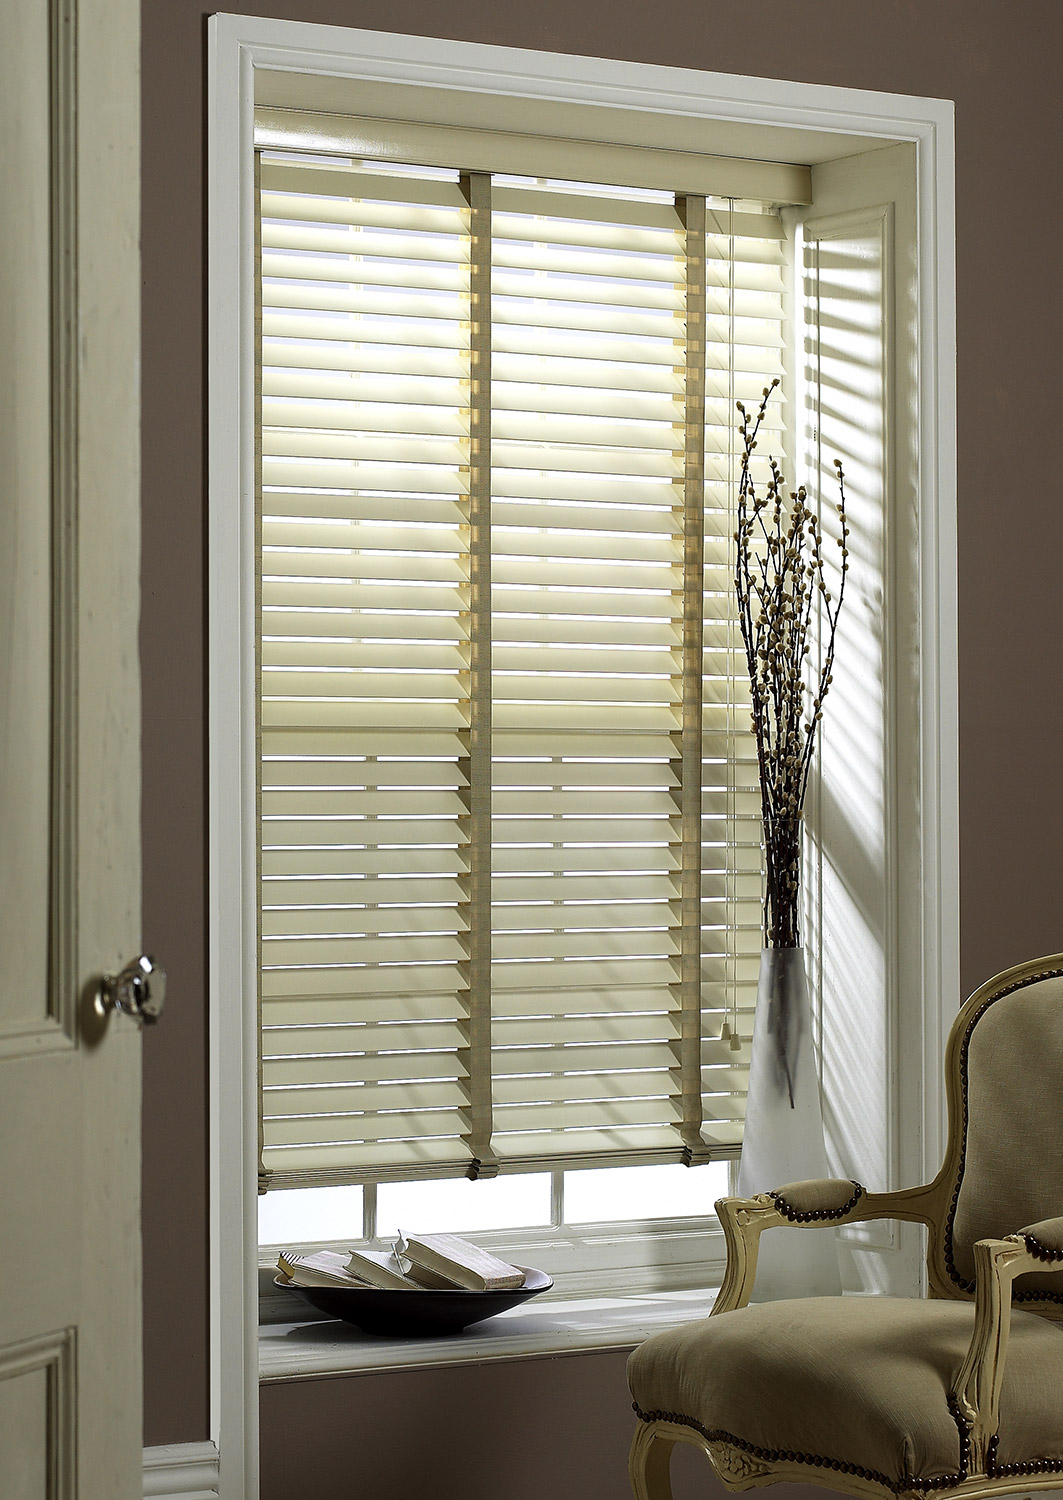 SLX-Wood-Blinds—63mm-Oyster-Blind-with-38mm-Oyster-Tape